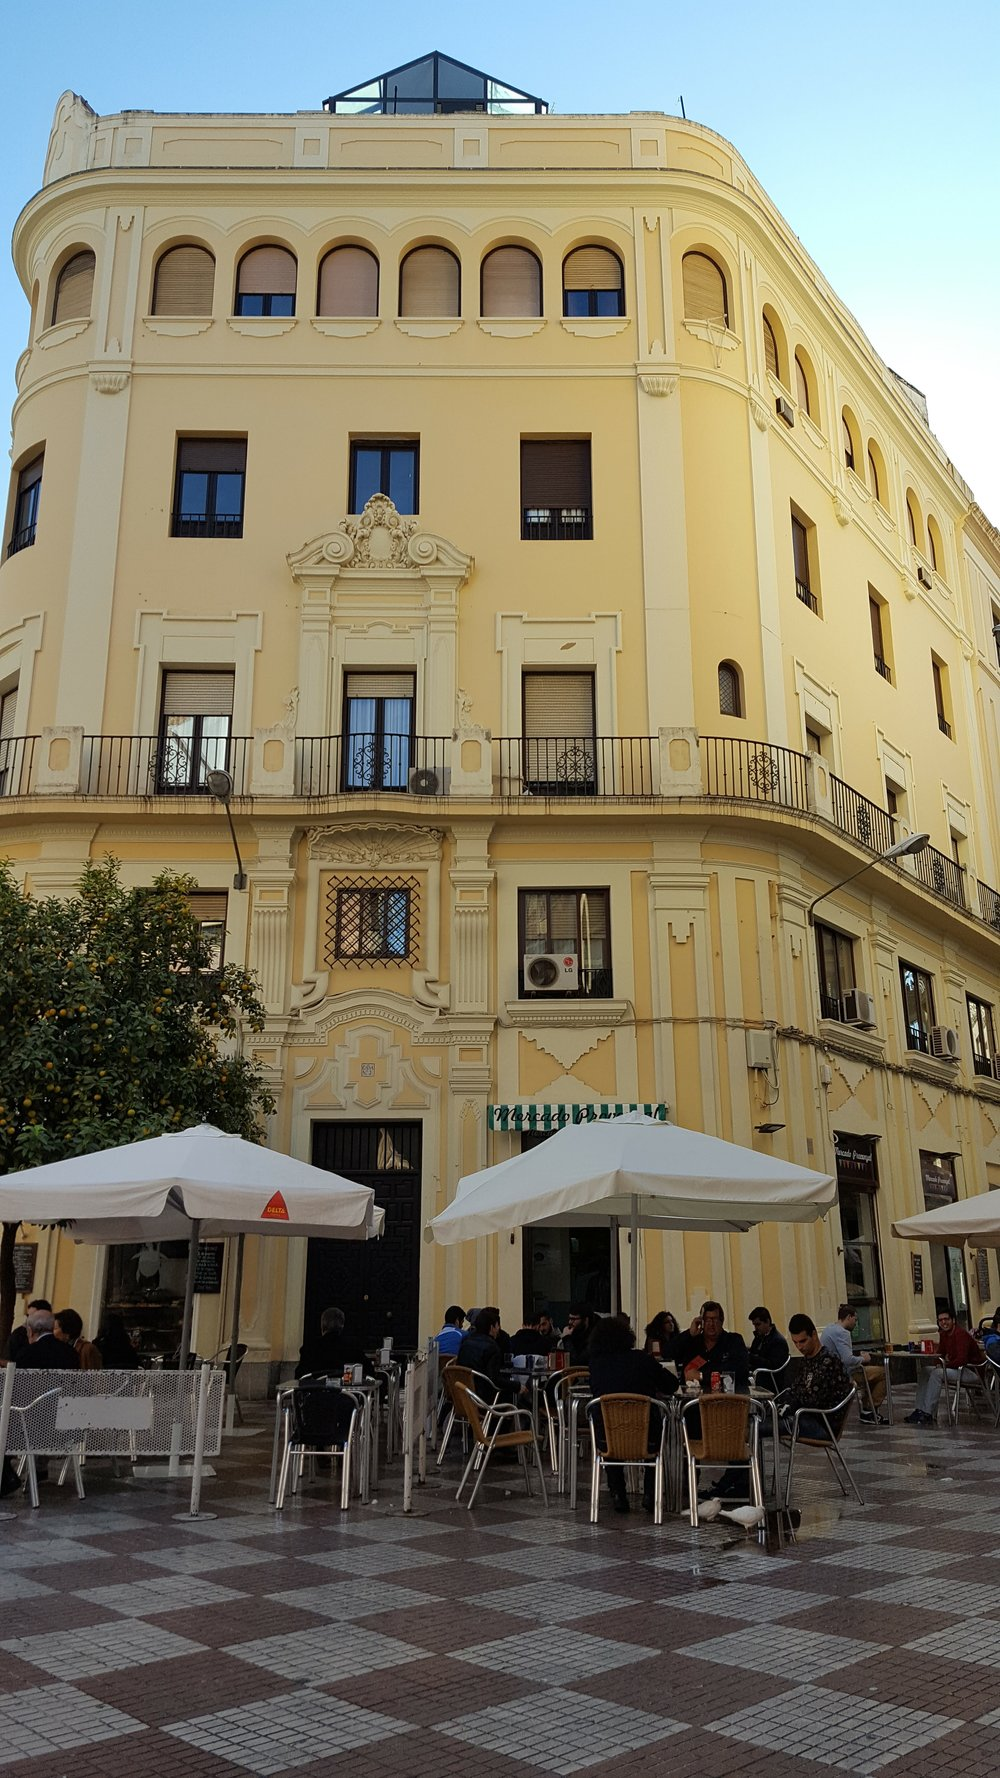 Buildings in Córdoba